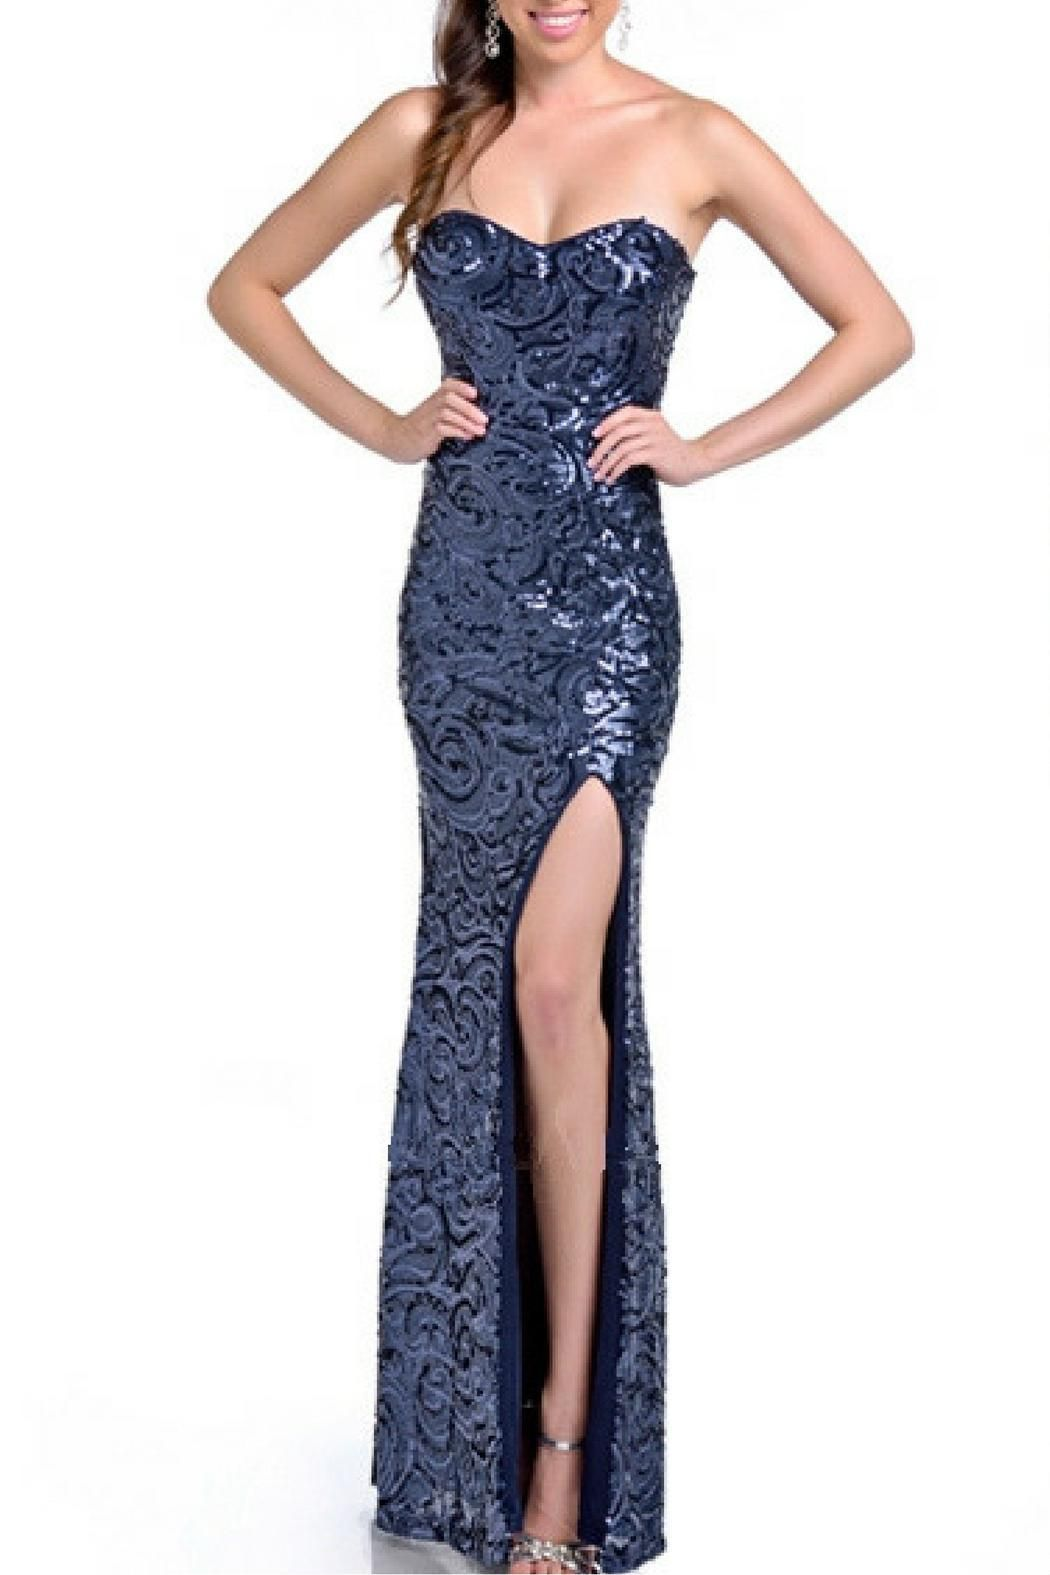 Opt for a timeless look in this navy sequined prom dress floor